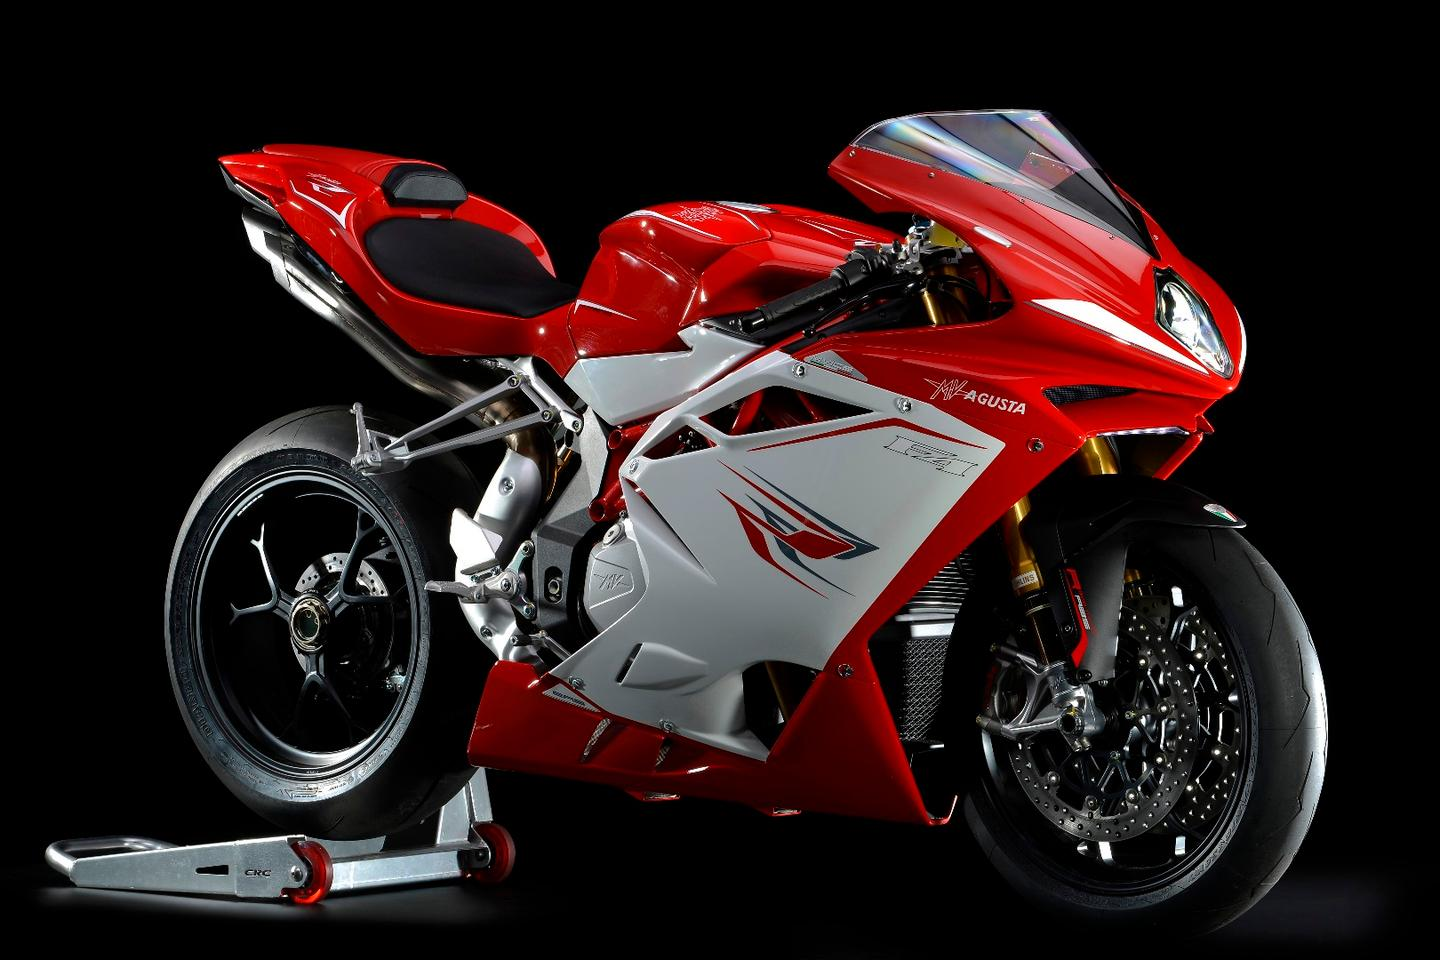 The 201 hp F4 RR is the latest superbike from MV Agusta – apparently it is soon to be replaced by a brand new model